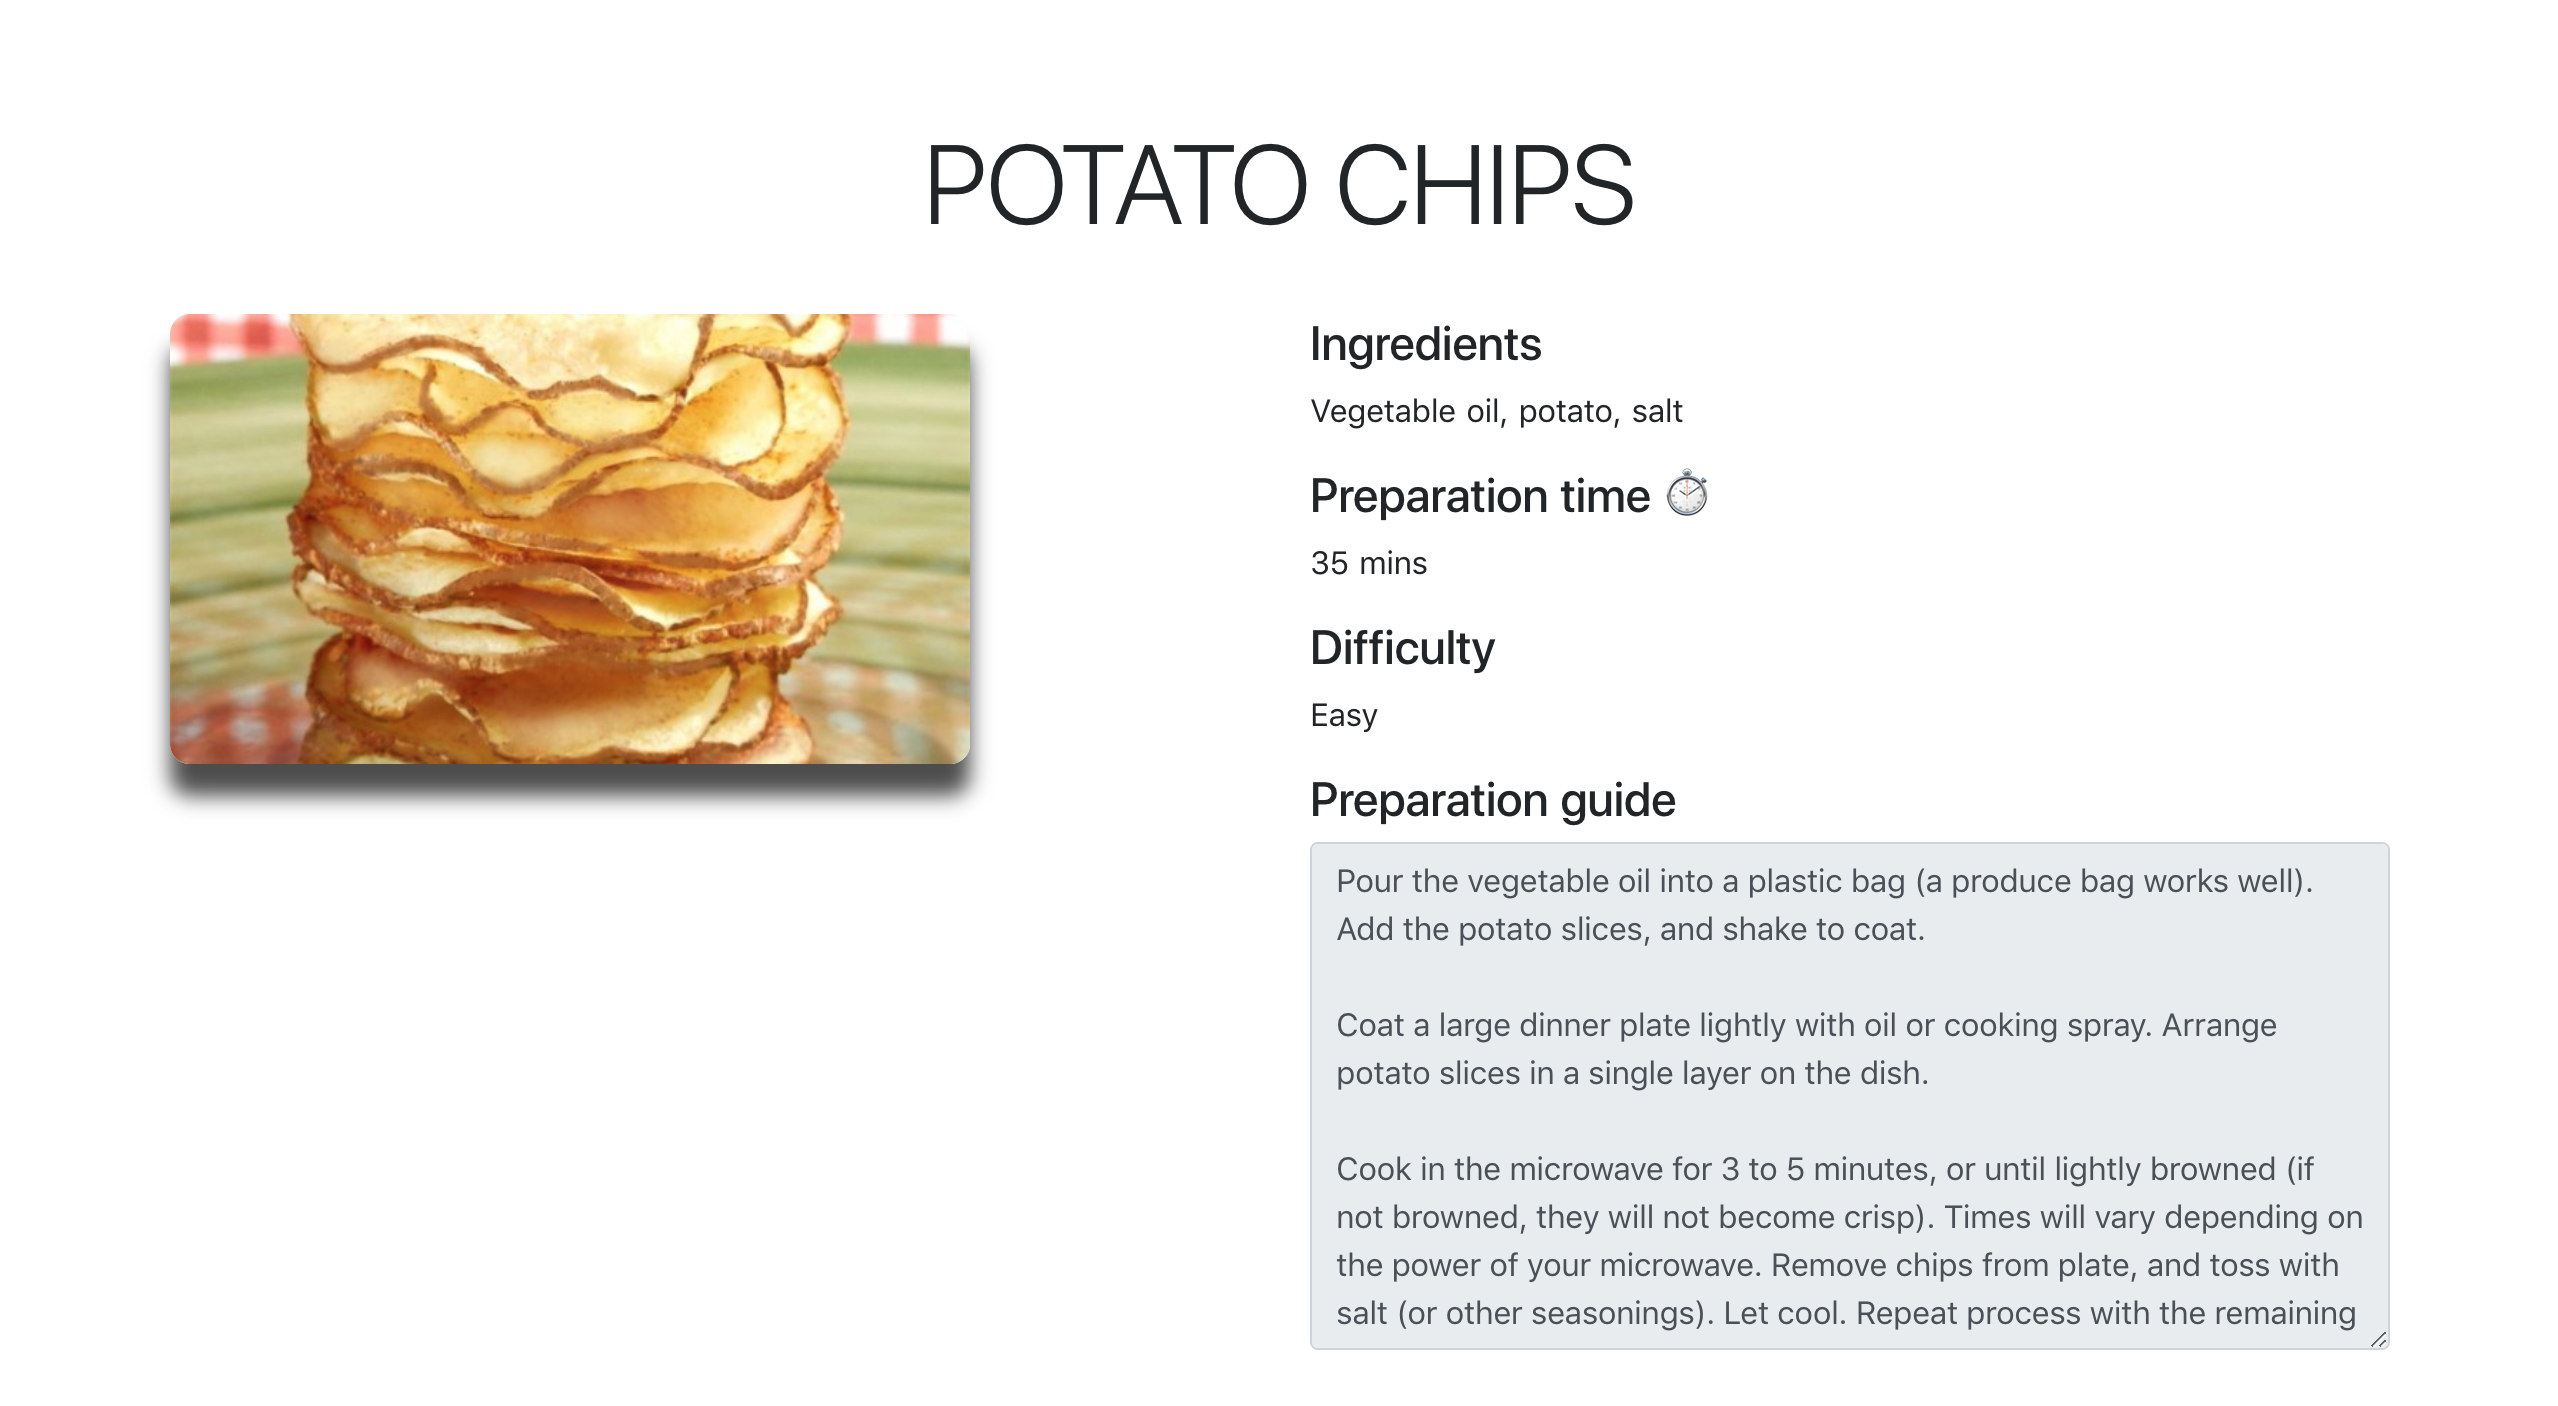 Single recipe item potato chips. With ingredients, prep time, difficulty, and prep guide